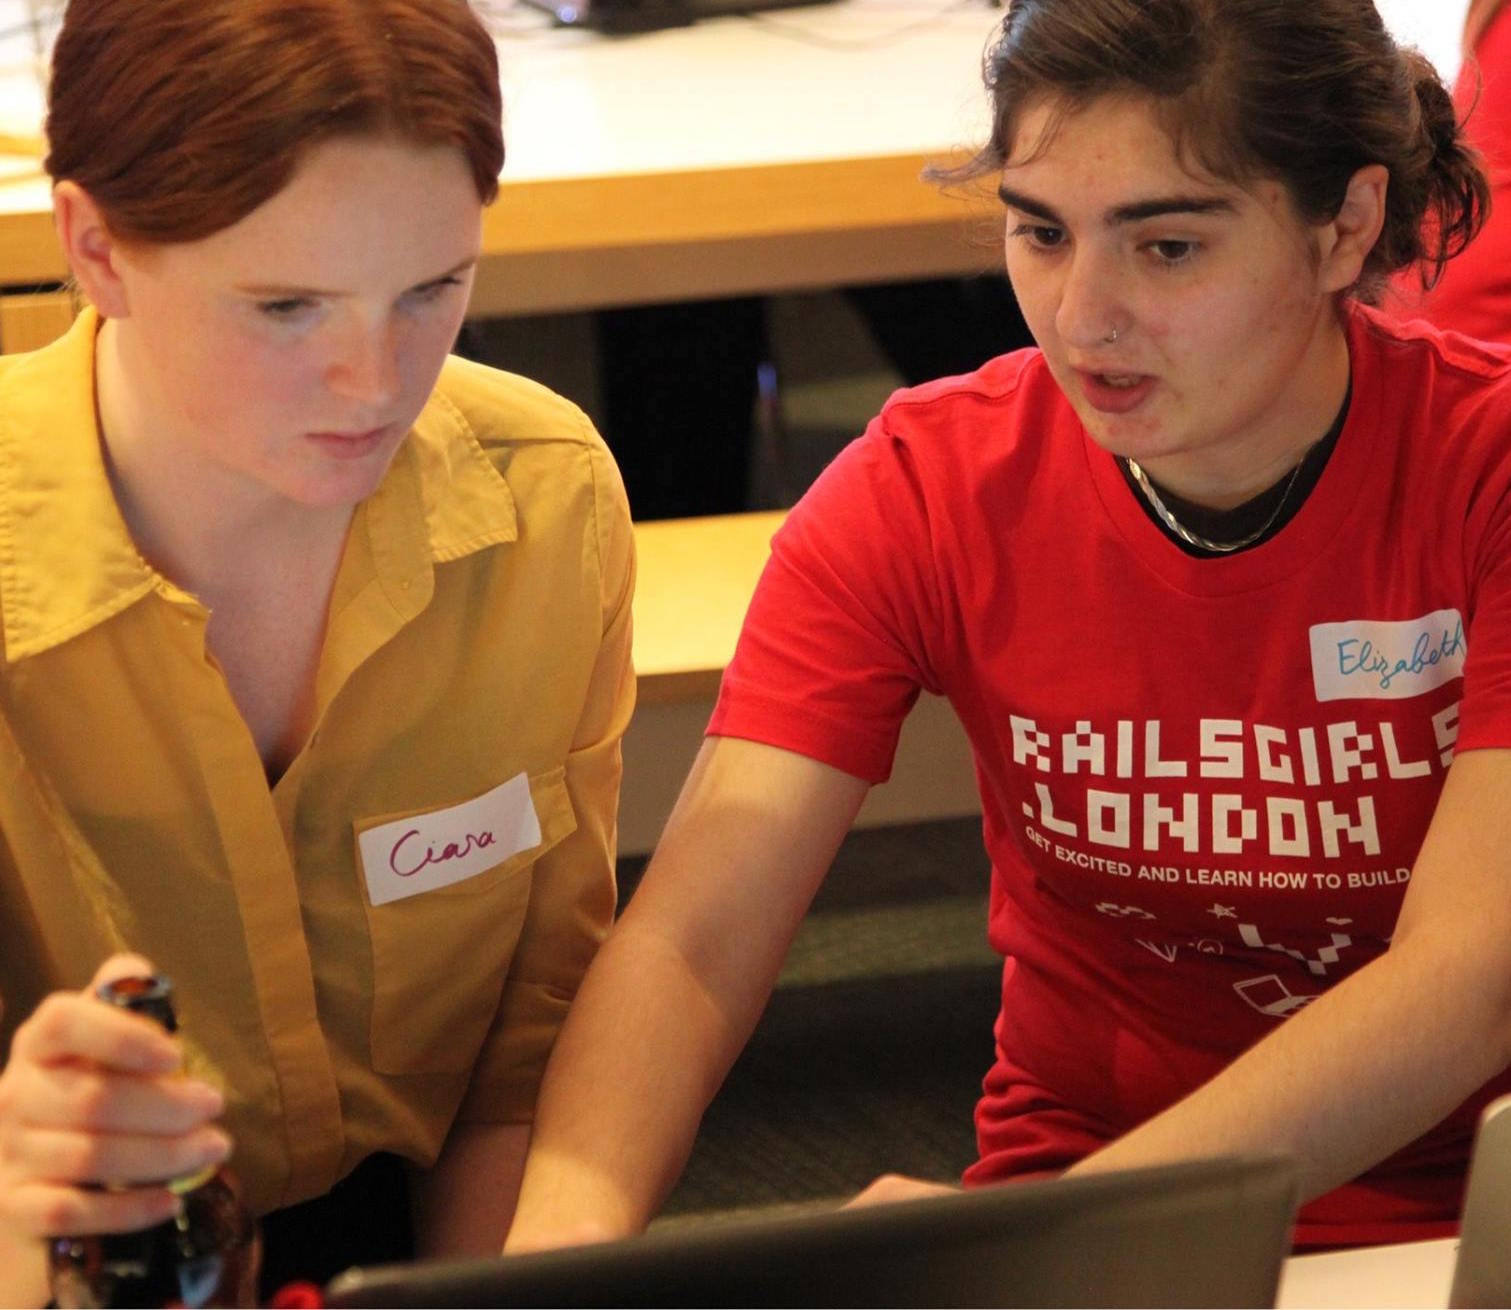 Elizabeth teaching at RailsGirls